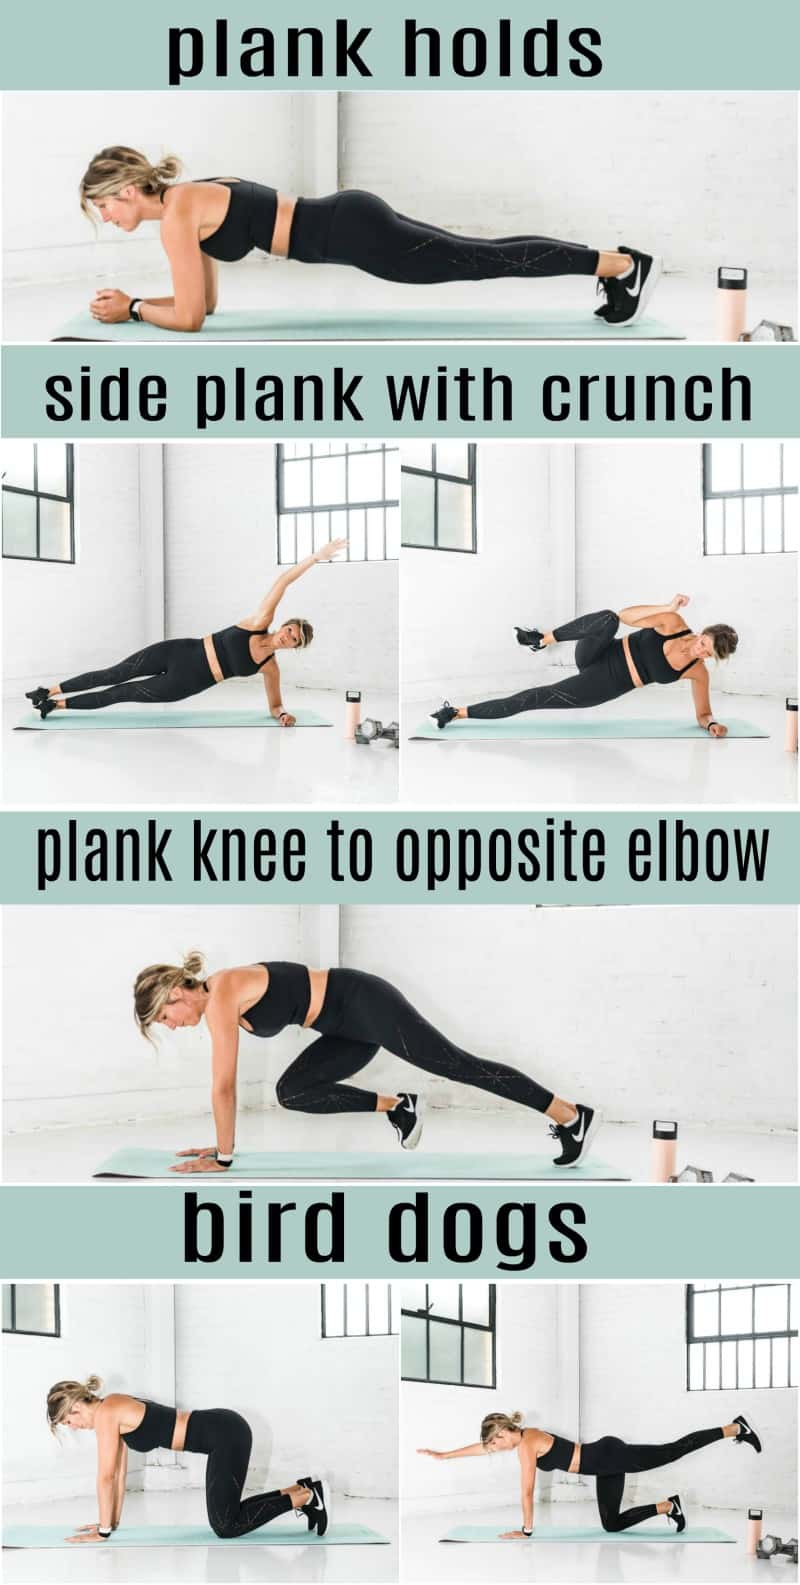 pinterest image for 8 minute abs workout